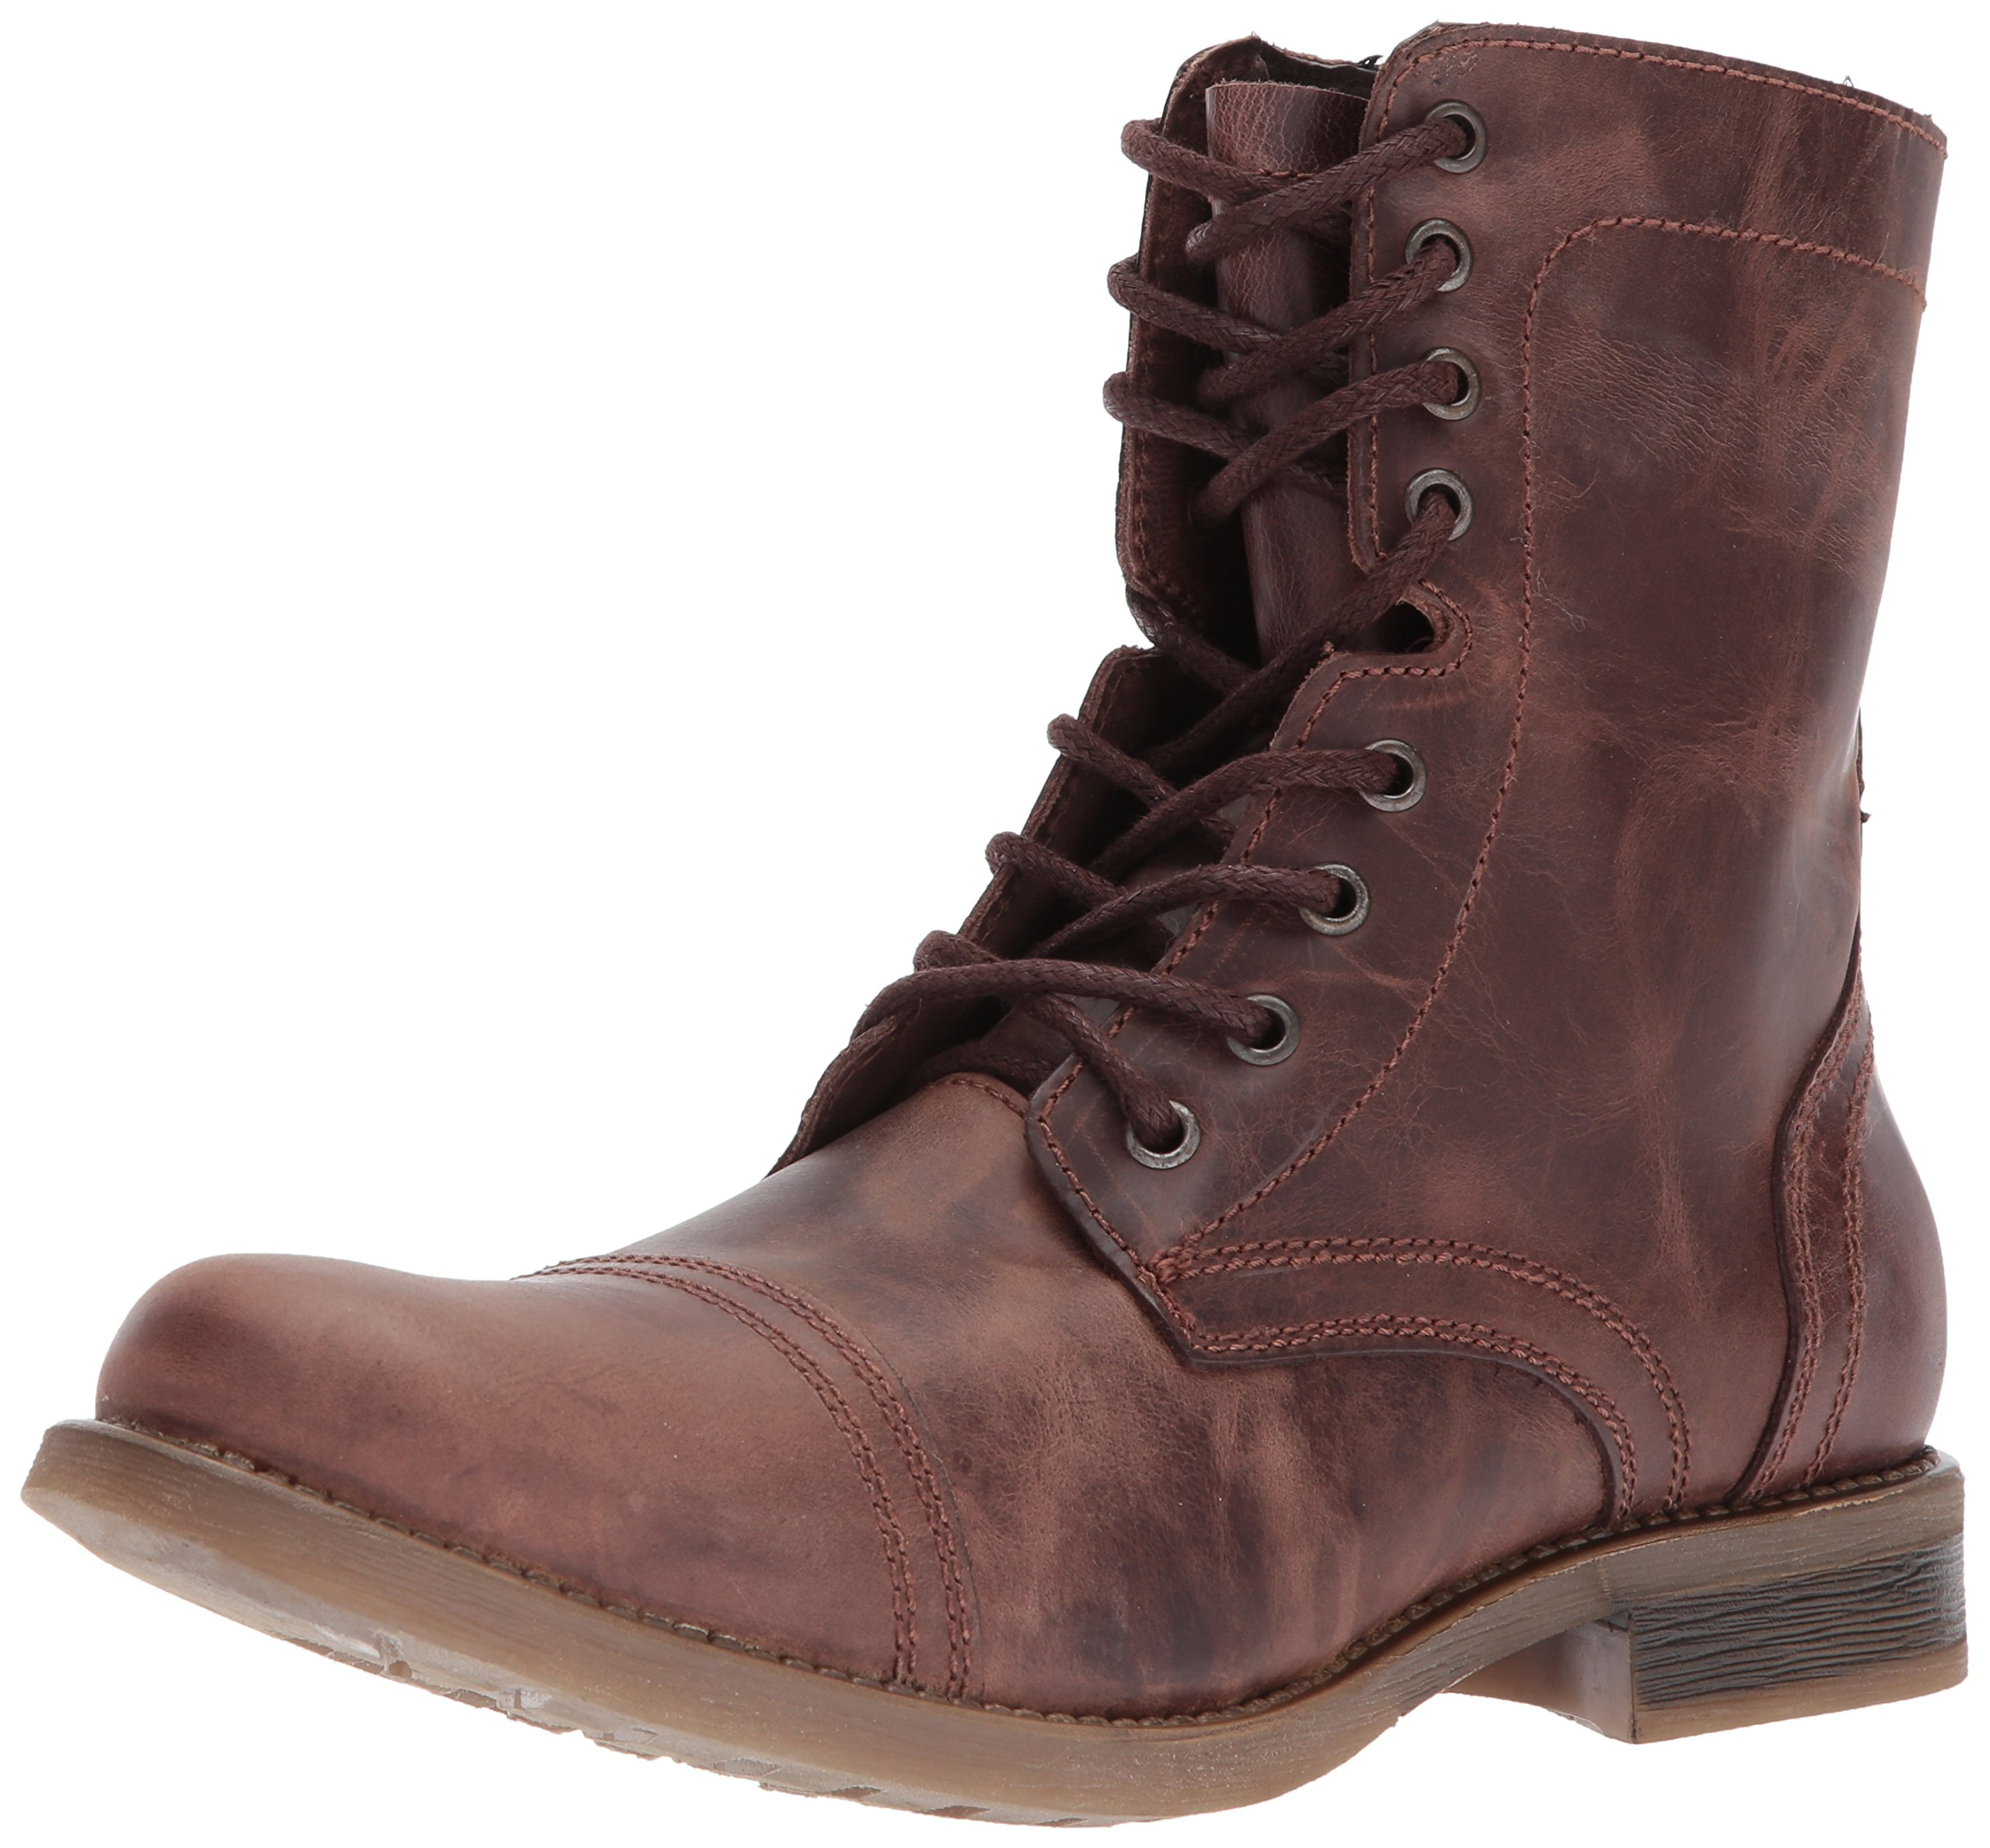 Steve Madden Men's Troopah-C Combat Boot, Brown Leather, 11.5 M US by Steve Madden